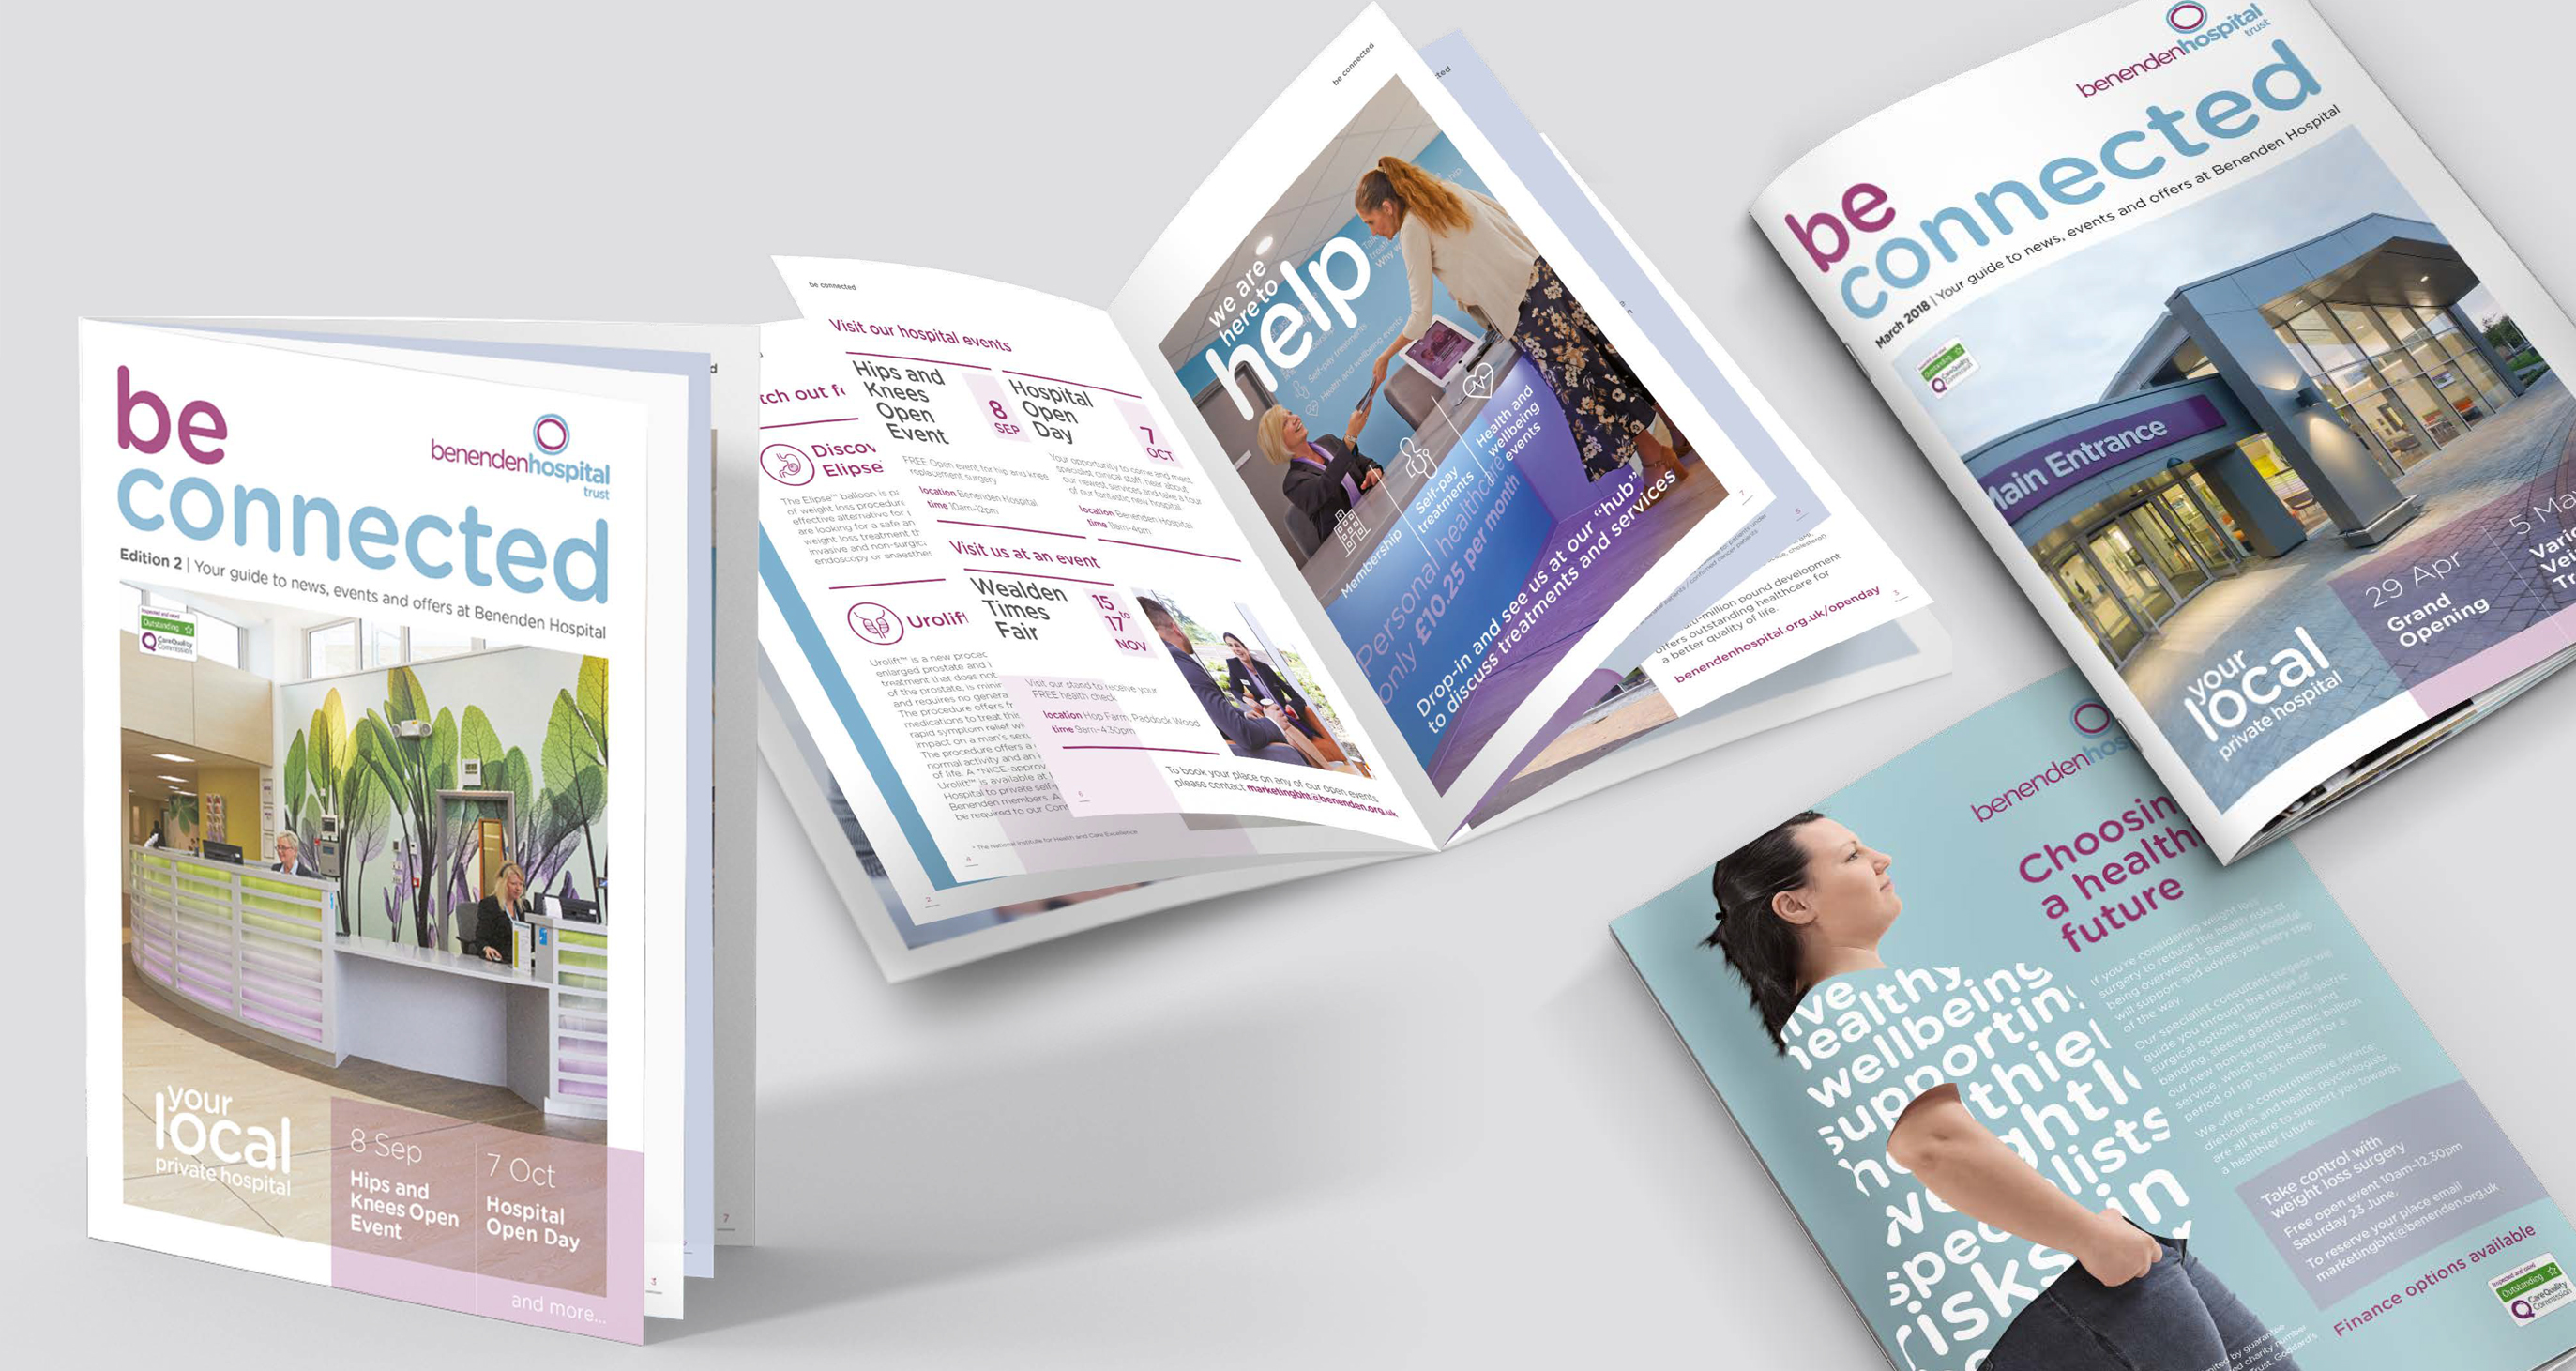 Benenden Hospital's be connected magazine